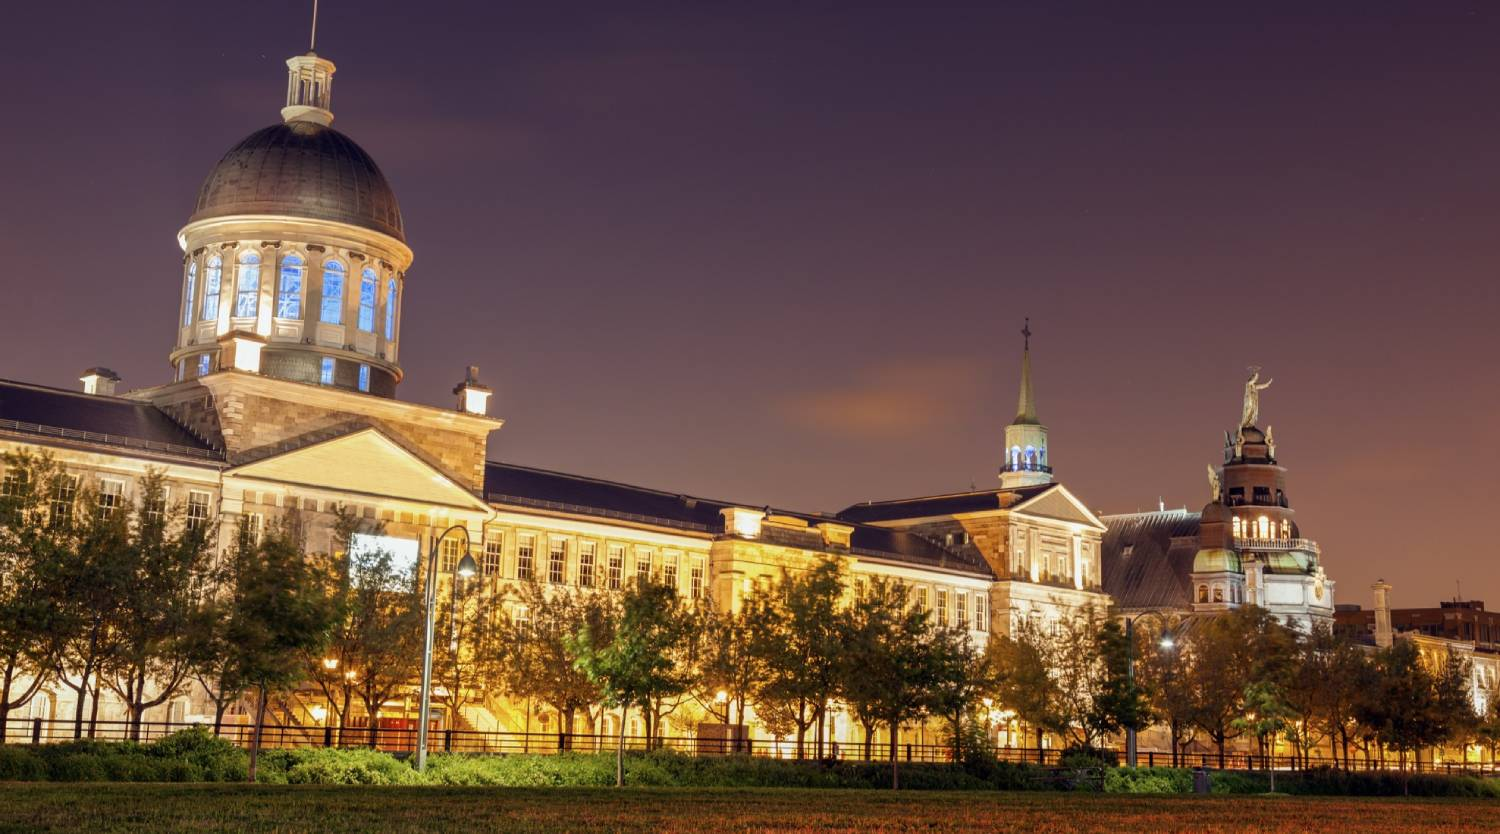 Bonsecours Market - Things To Do In Montreal